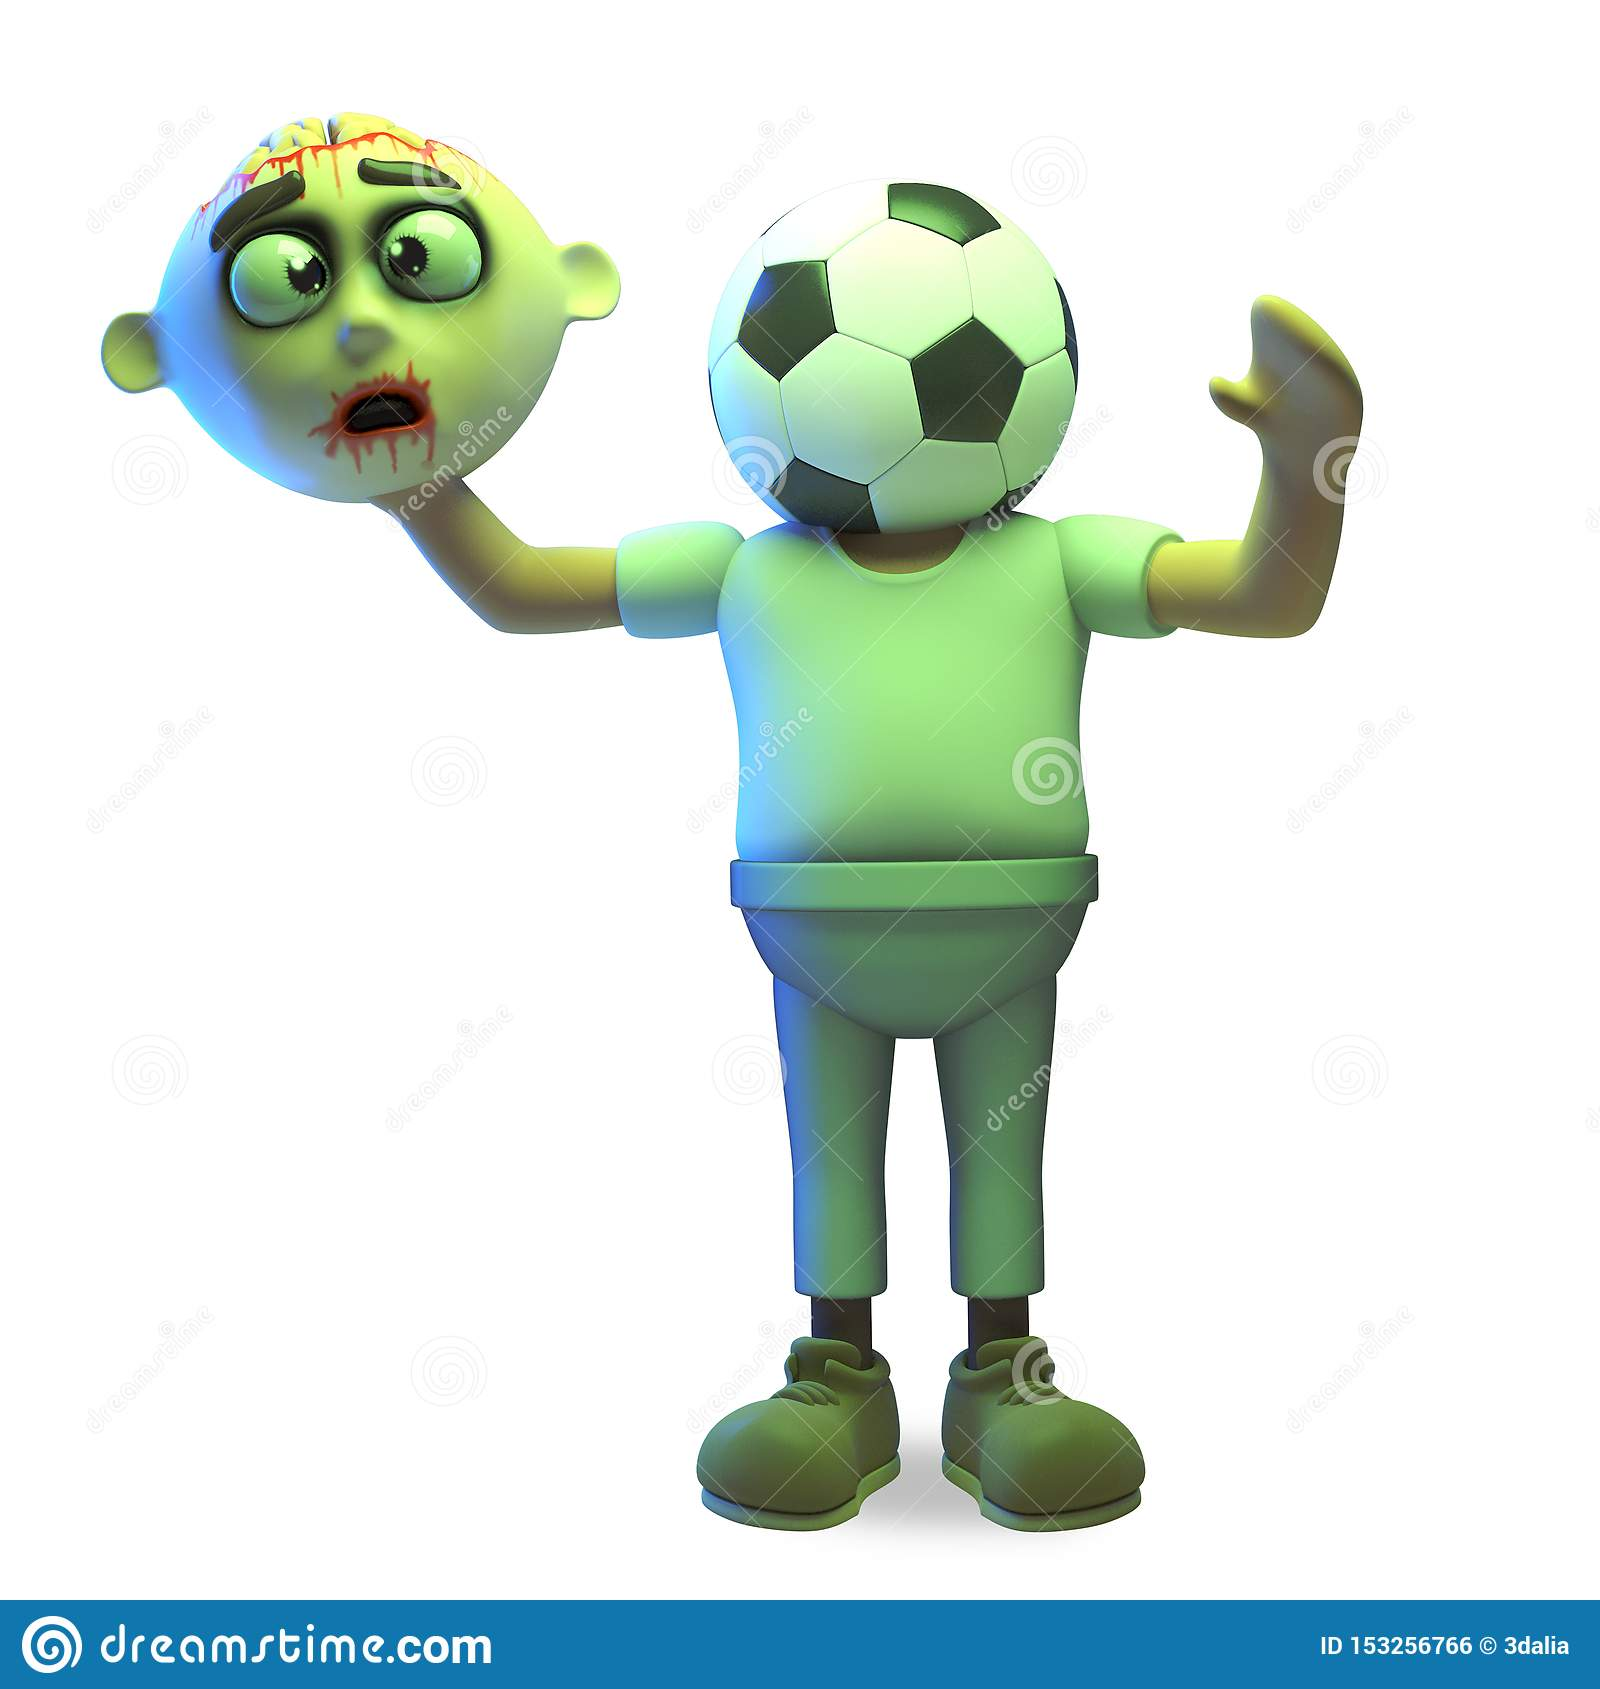 Dessin Halloween Zombie.Sports Crazy Halloween Zombie Monster Has Changed His Head For A Soccer Ball 3d Illustration Stock Illustration Illustration Of Cadaver Background 153256766